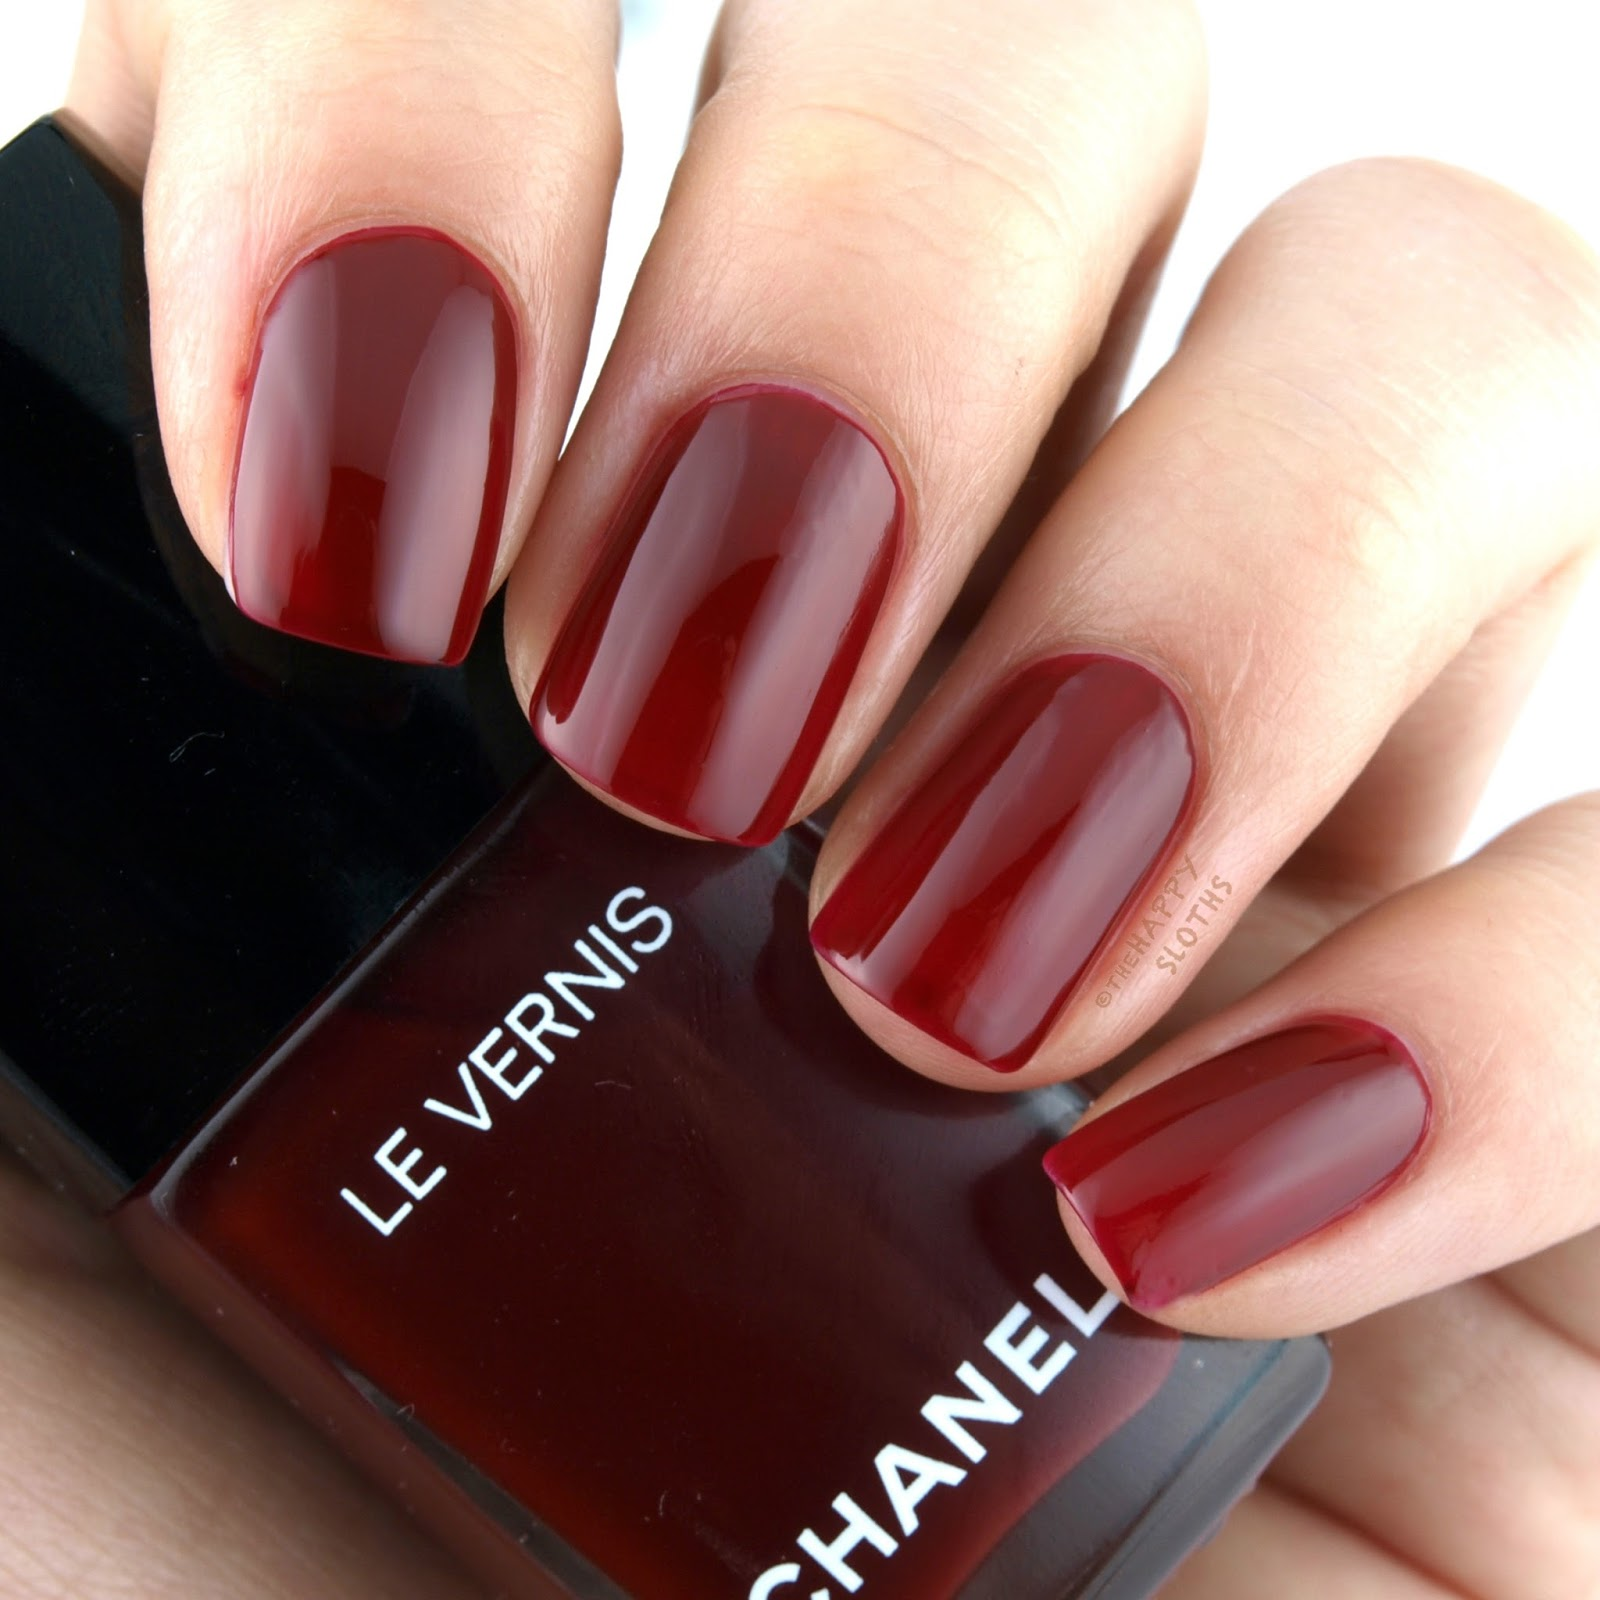 Chanel Spring 2017 Le Vernis 572 Emblematique: Review and Swatches